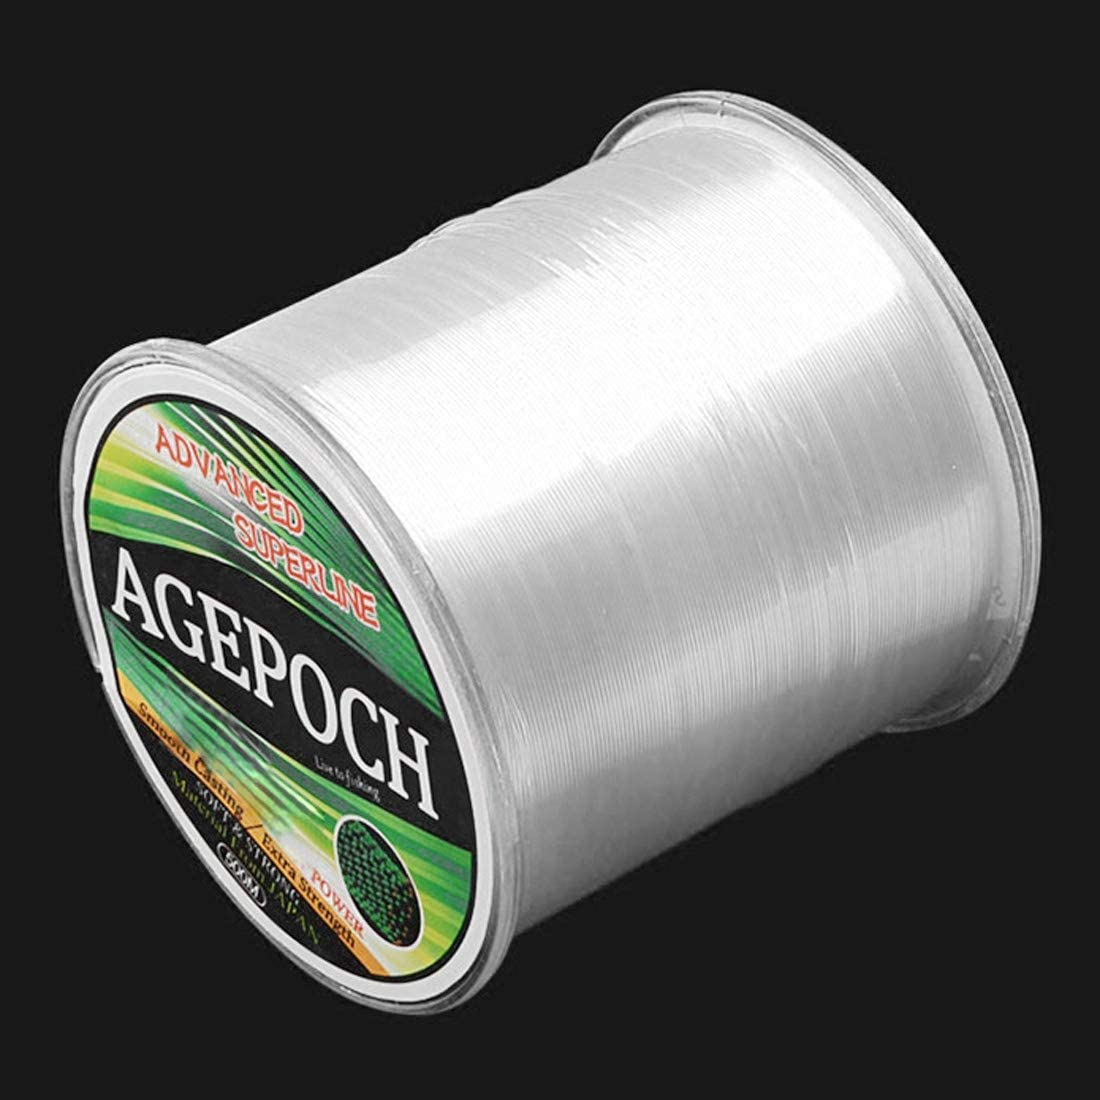 10,2 kg Tension 500m Extra Strong Imported Rohseide//NylonFishing Line WXK Angelleine Linie Angeln Grass Gelb // 4.0# 0.32mm